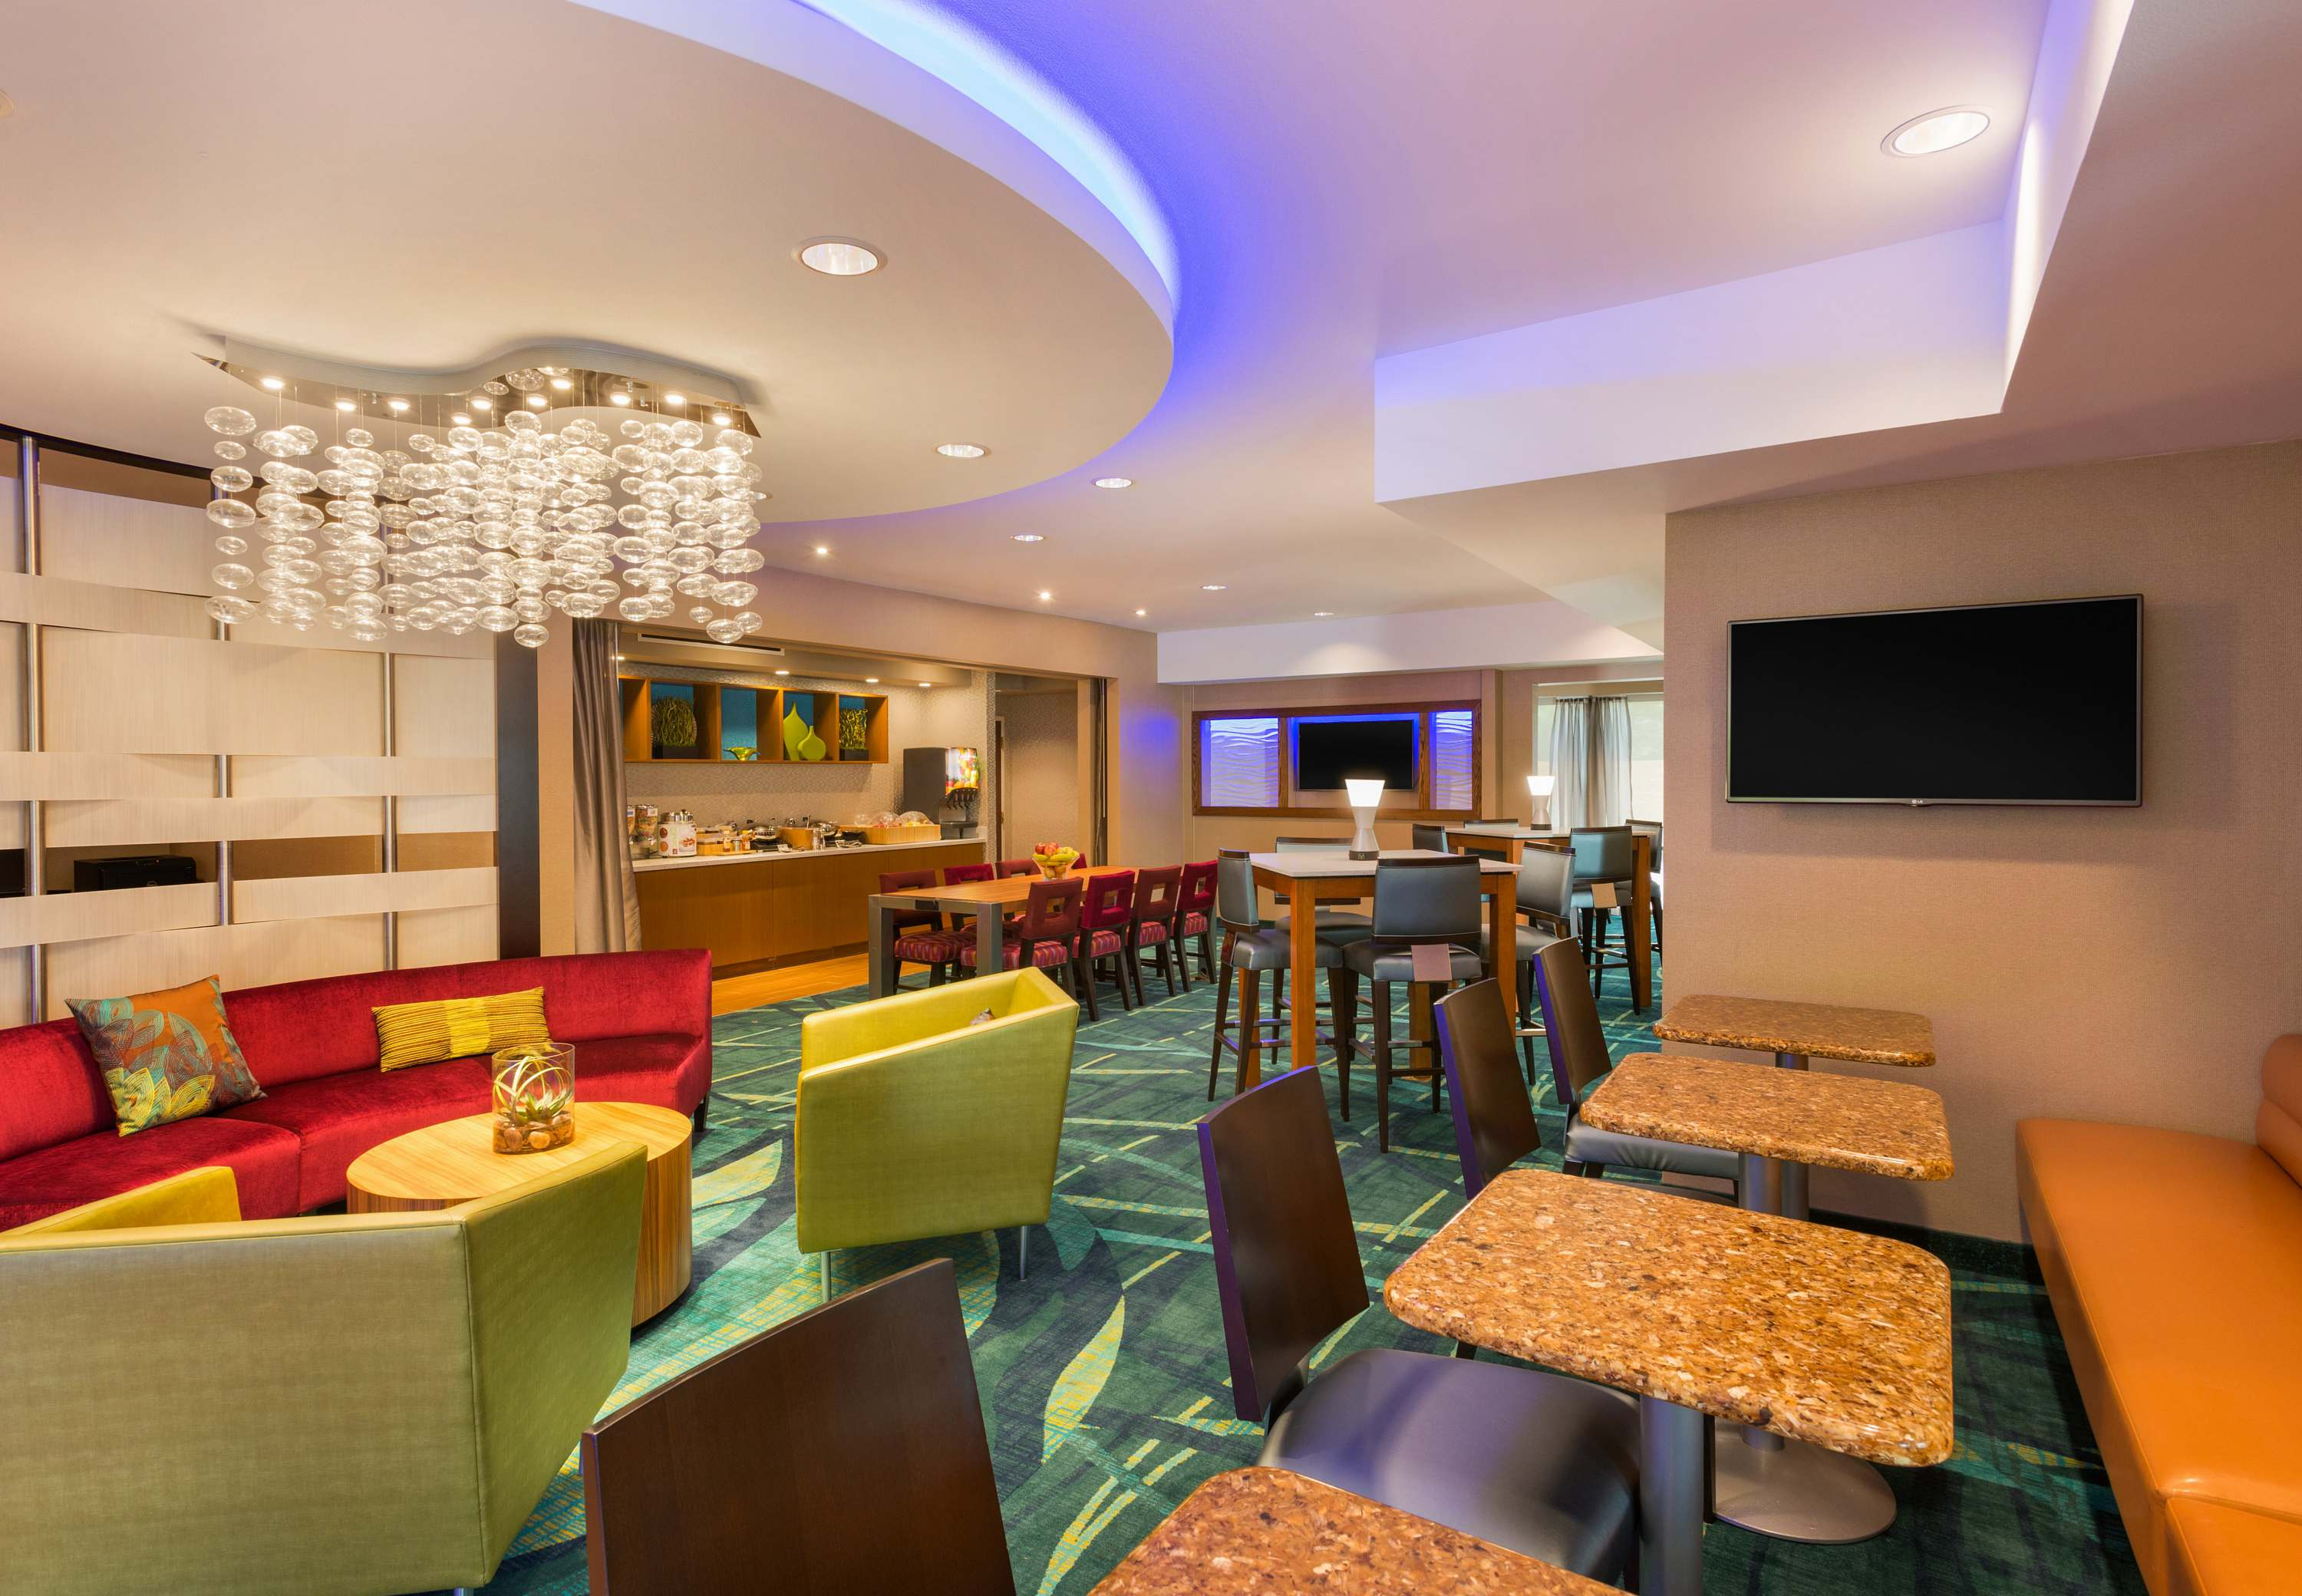 SpringHill Suites by Marriott Little Rock West image 0